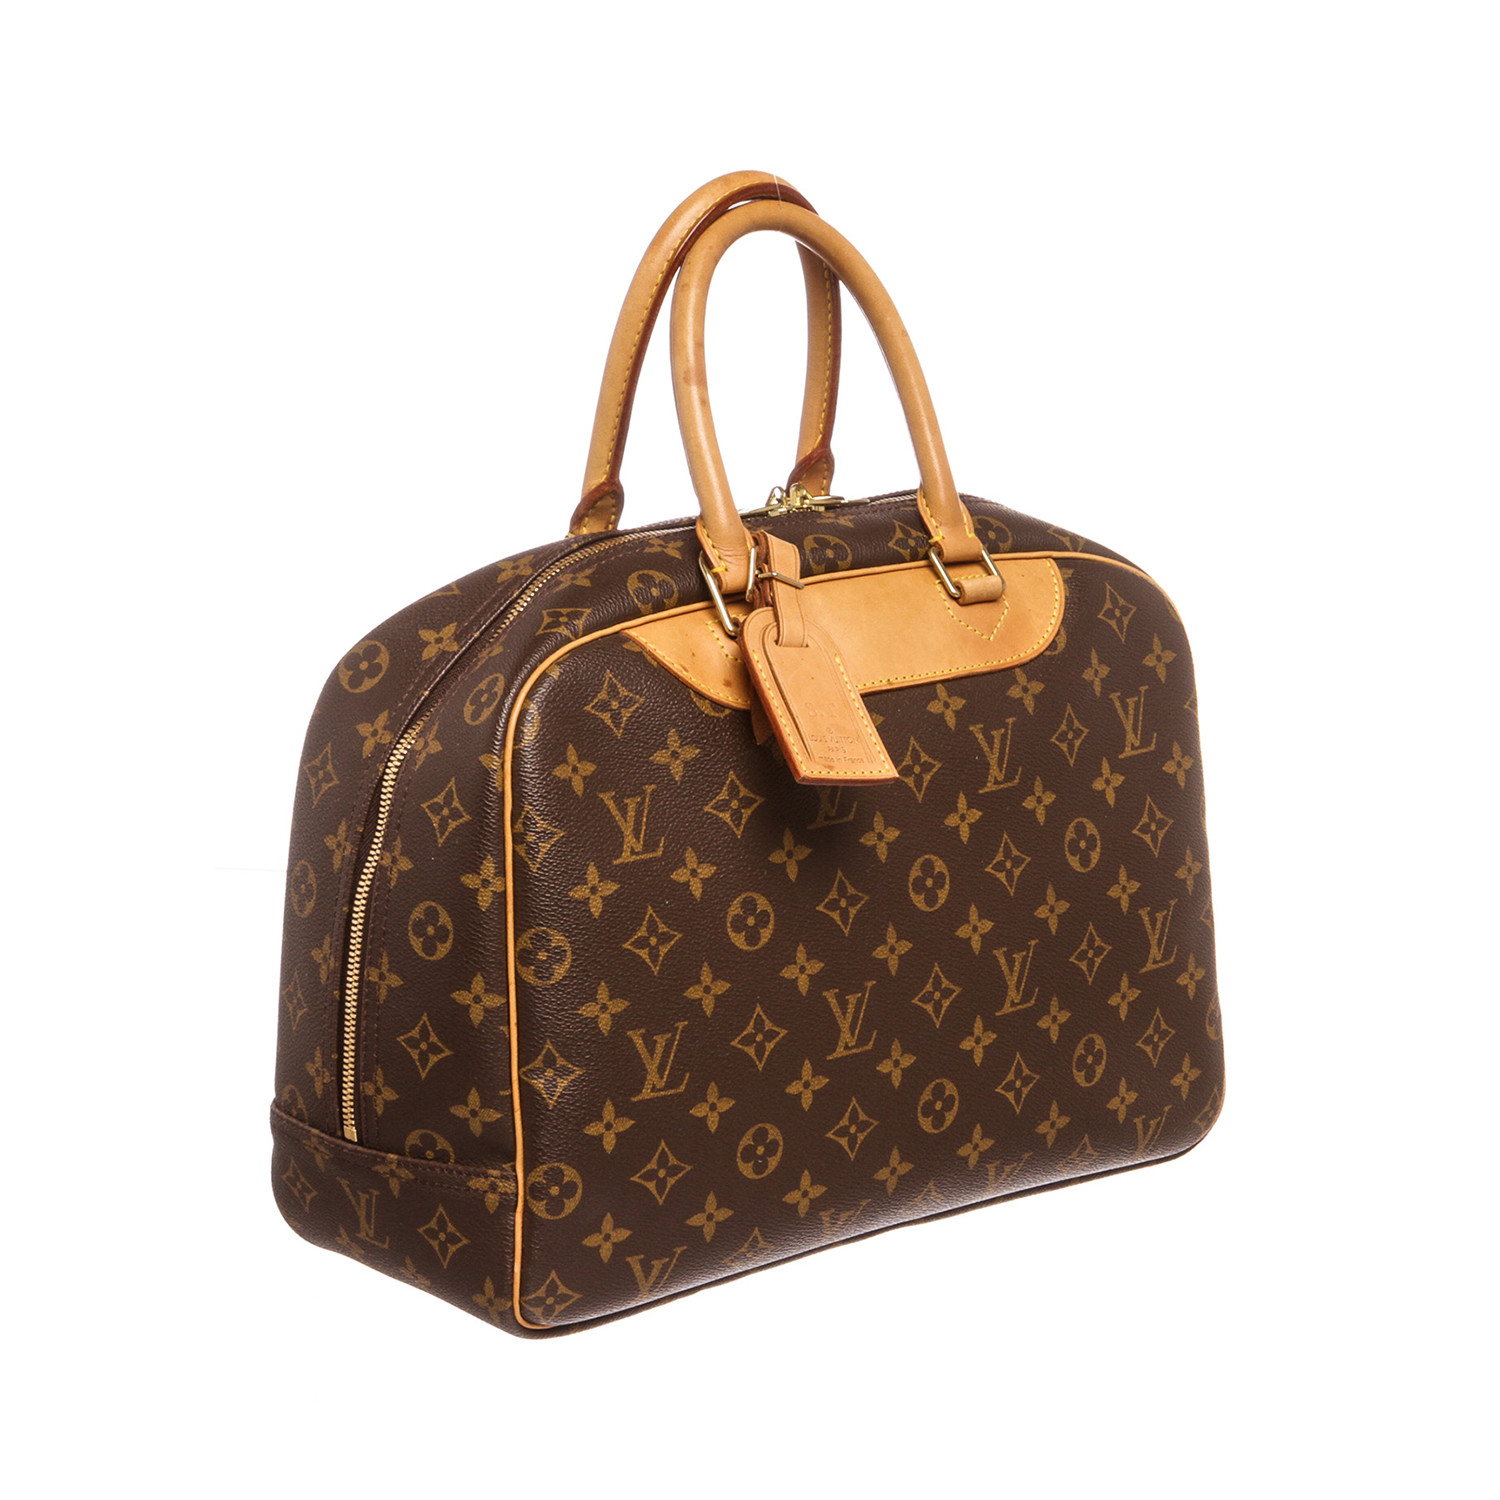 louis vuitton monogram deauville doctor bag pre owned louis vuitton touch of modern. Black Bedroom Furniture Sets. Home Design Ideas